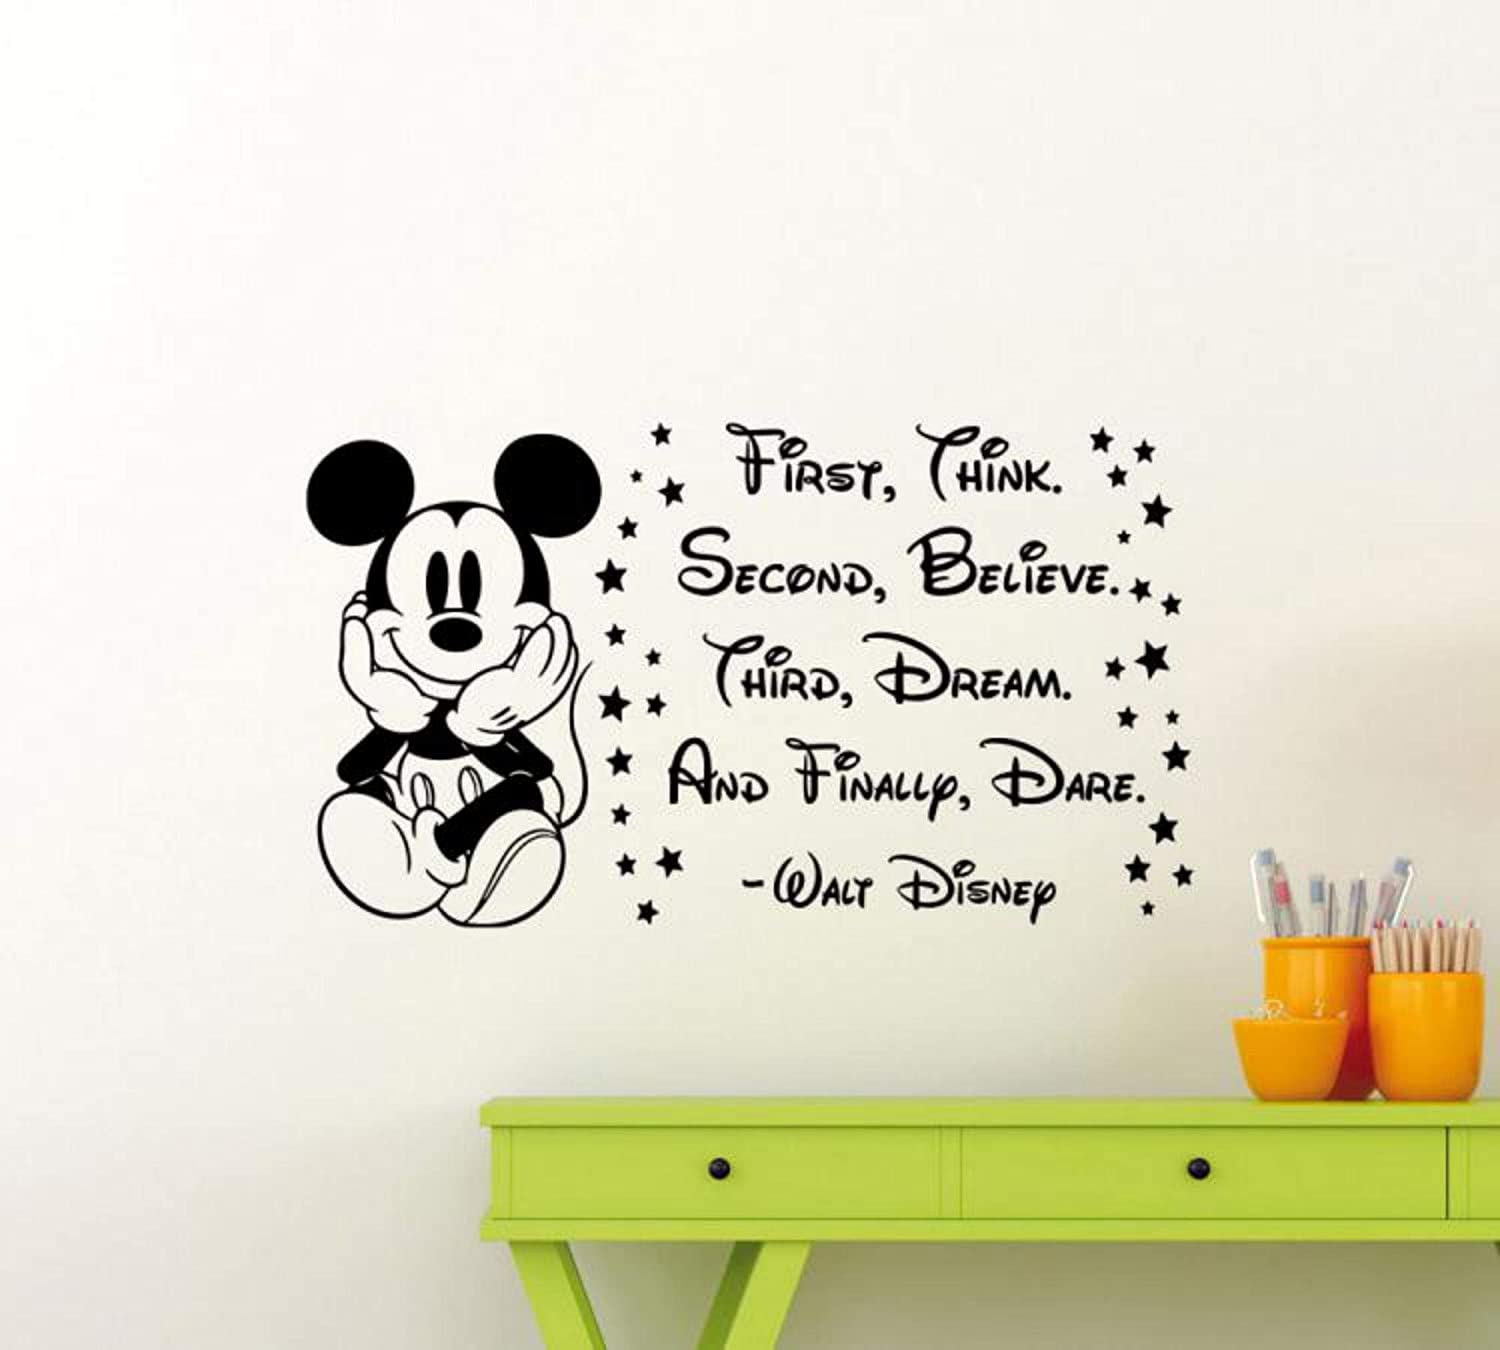 Mickey Mouse Wall Vinyl Decal Walt Disney Quote Poster Wall Decor Nursery Wall Art Disney Sticker Children Gift Mural Removable Kids Room Print 172ct